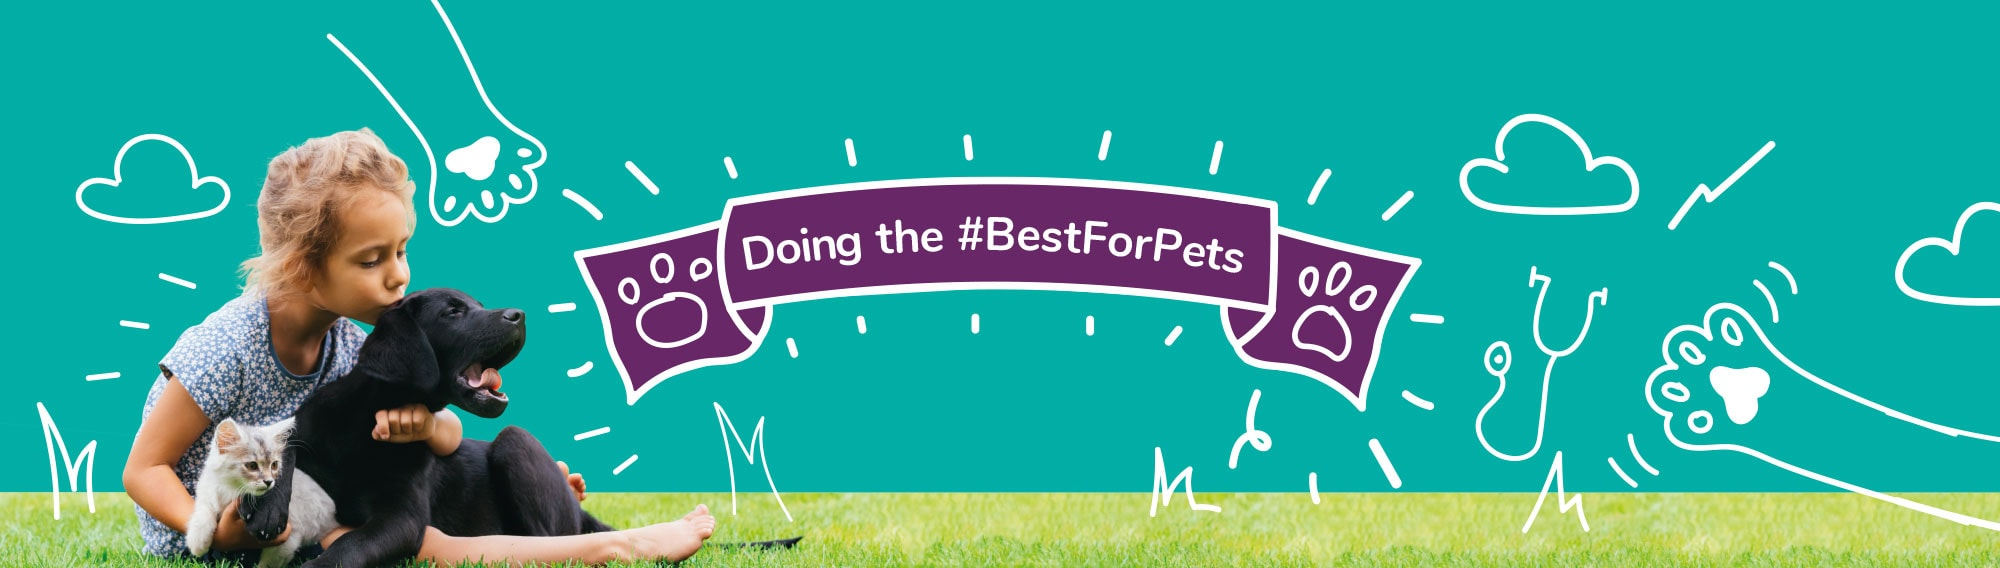 Doing the #BestForPets